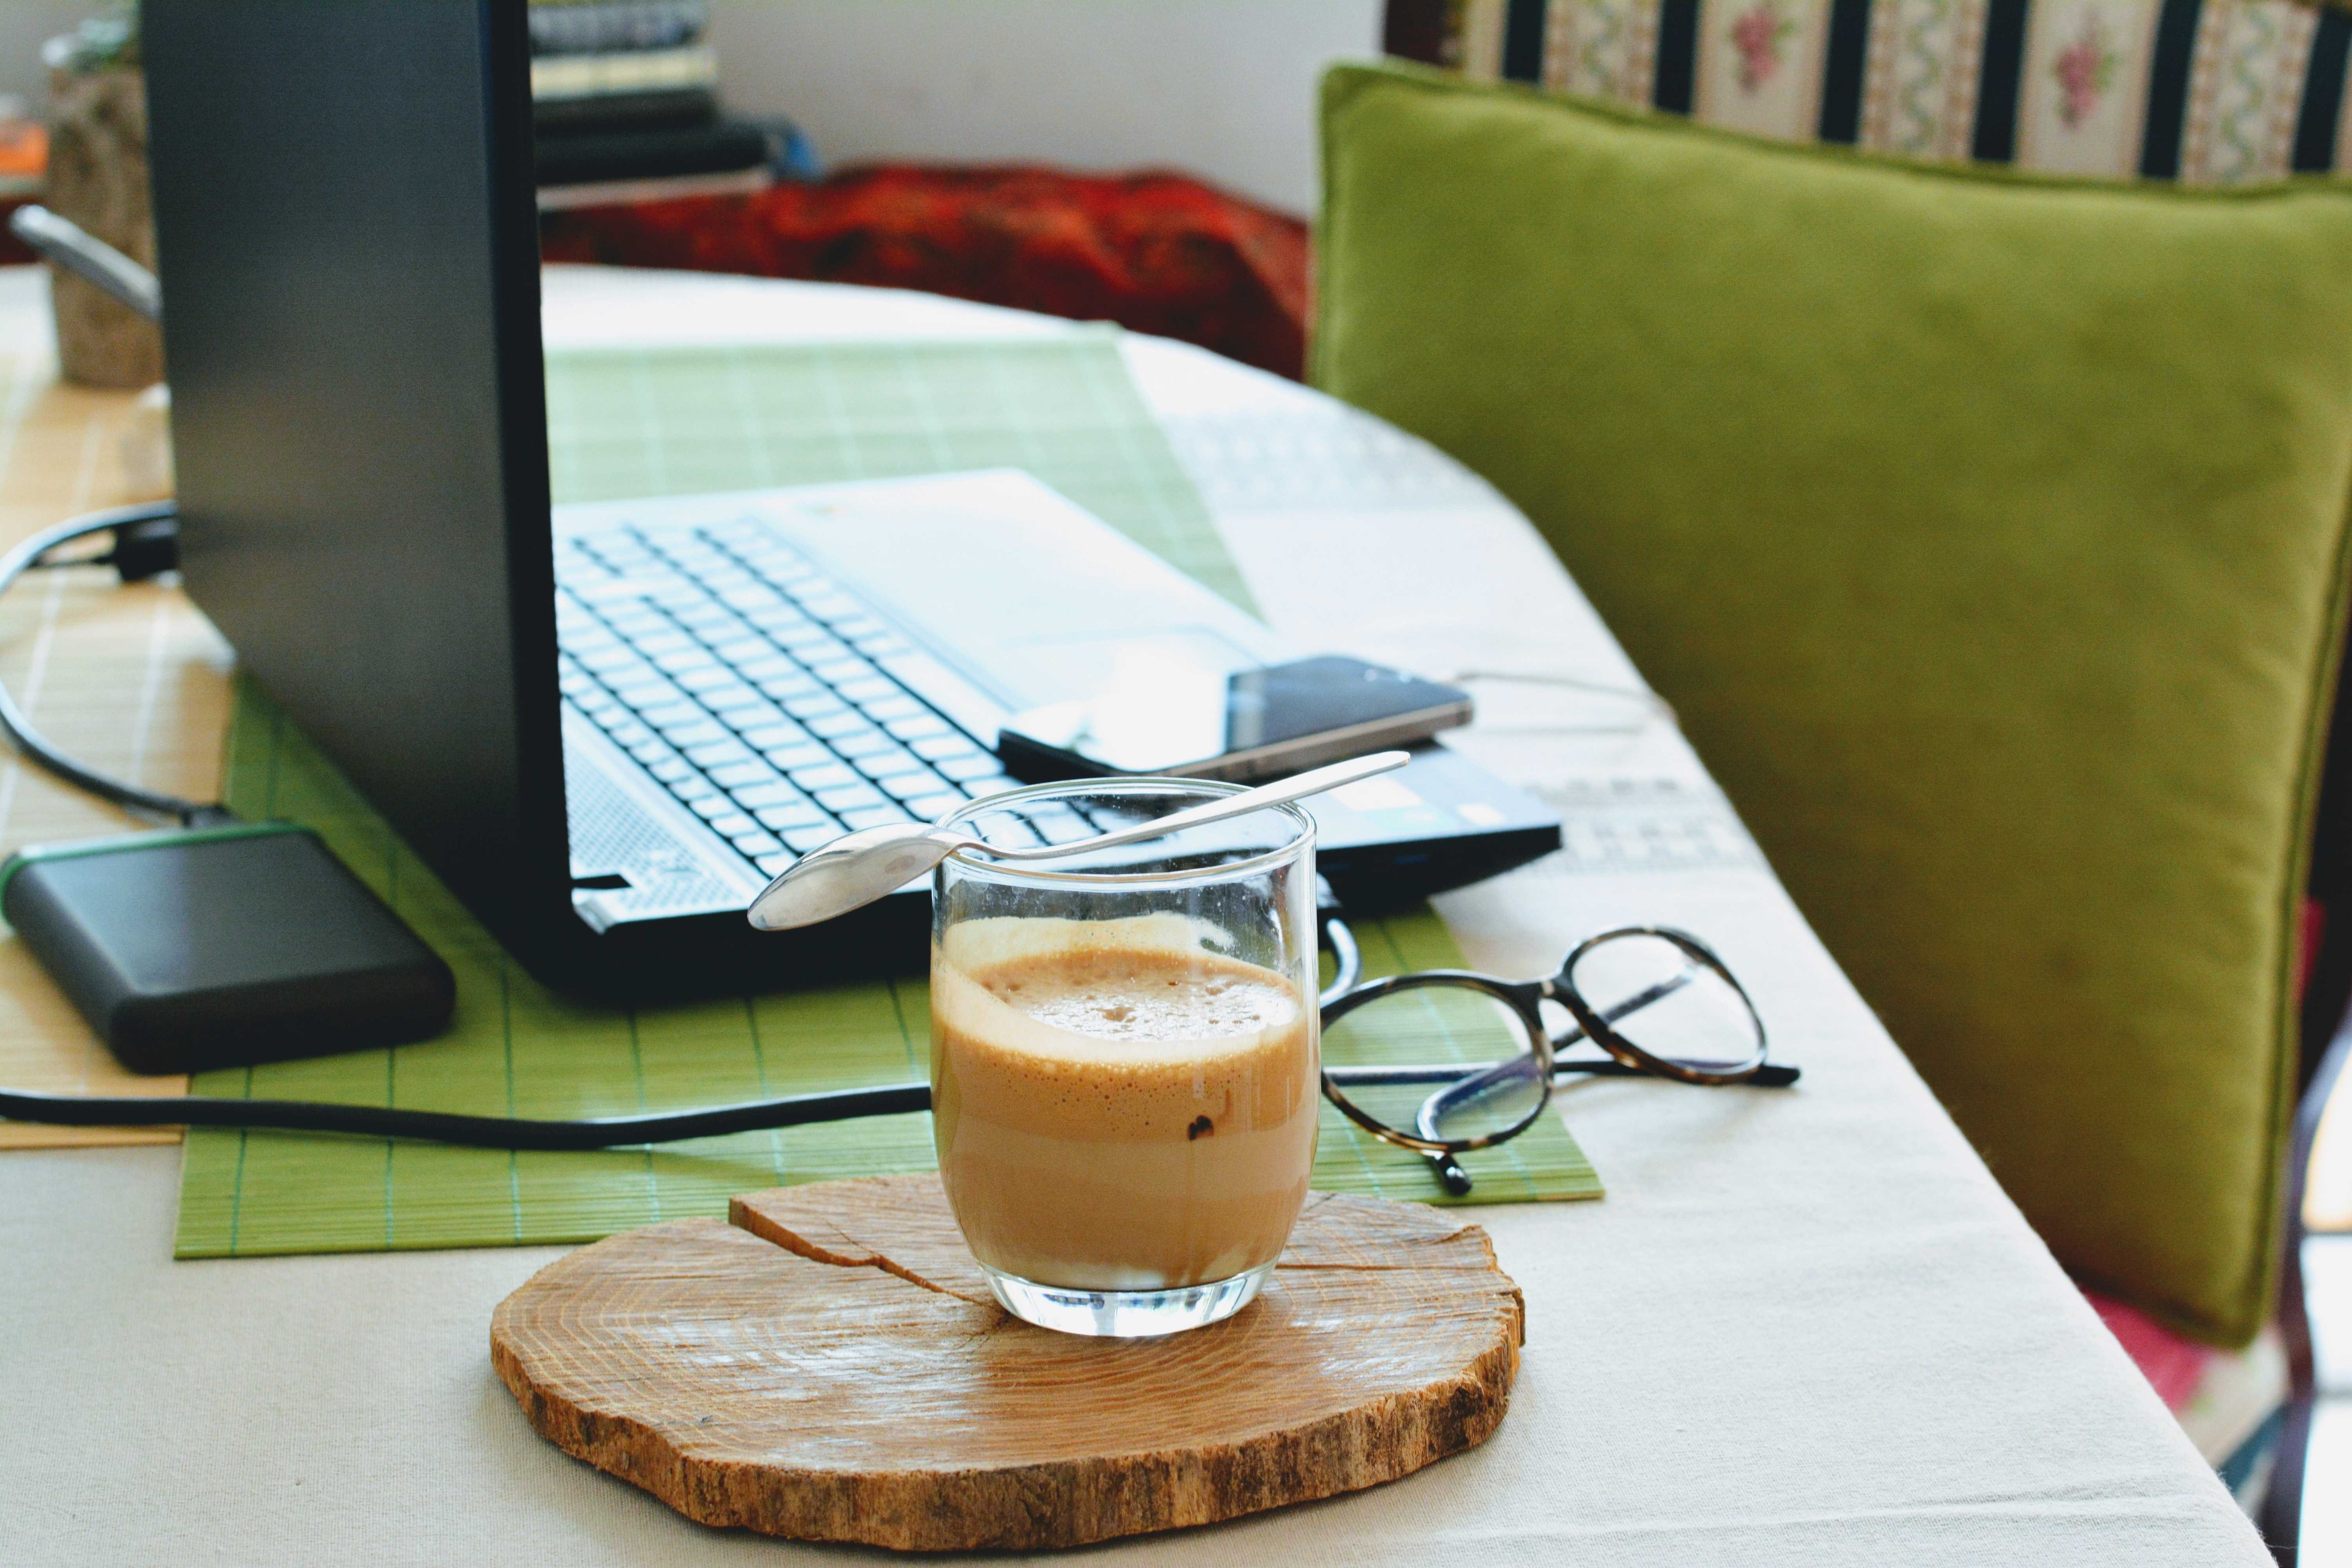 Work from Home: 10 Tools To Improve Your Productivity